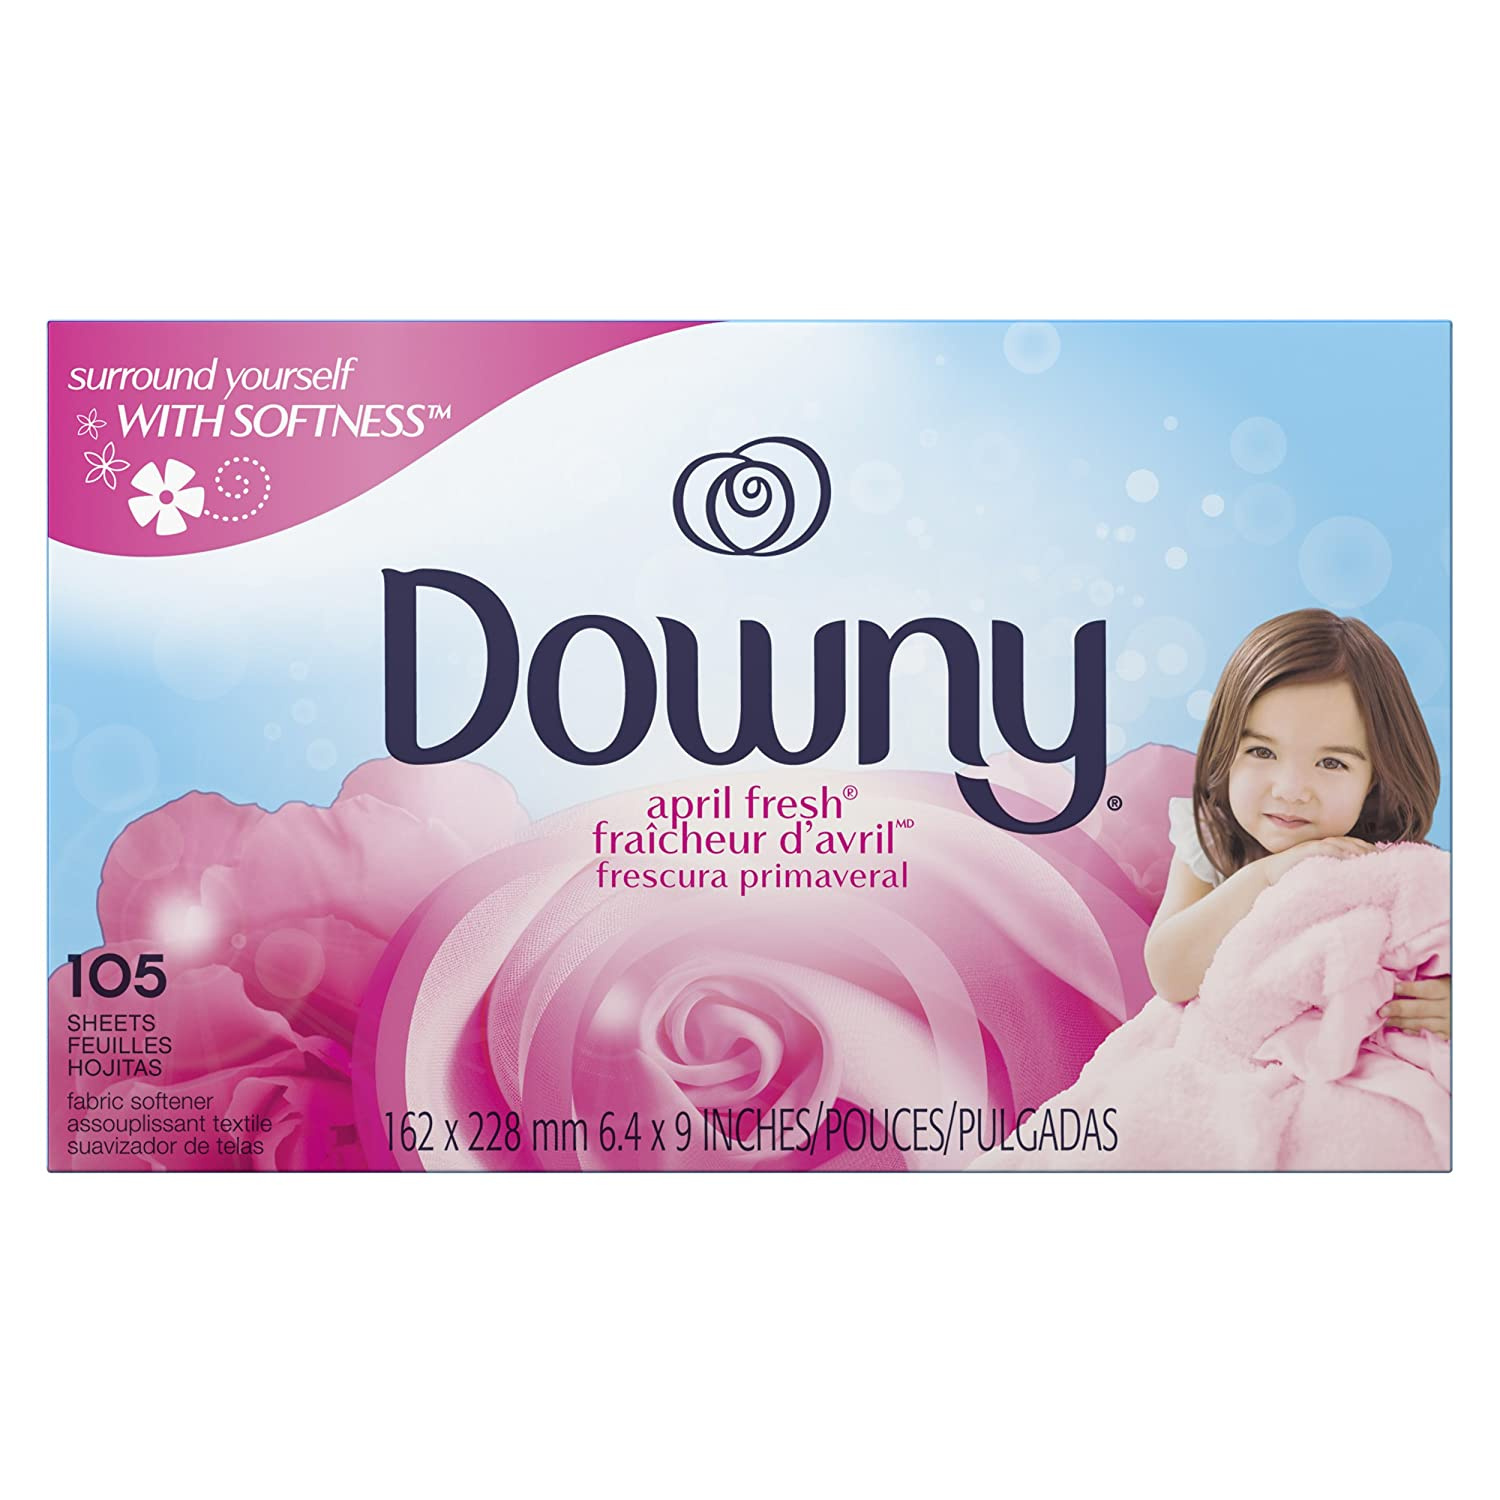 Downy April Fresh Fabric Softener Dryer sheets, 105 count